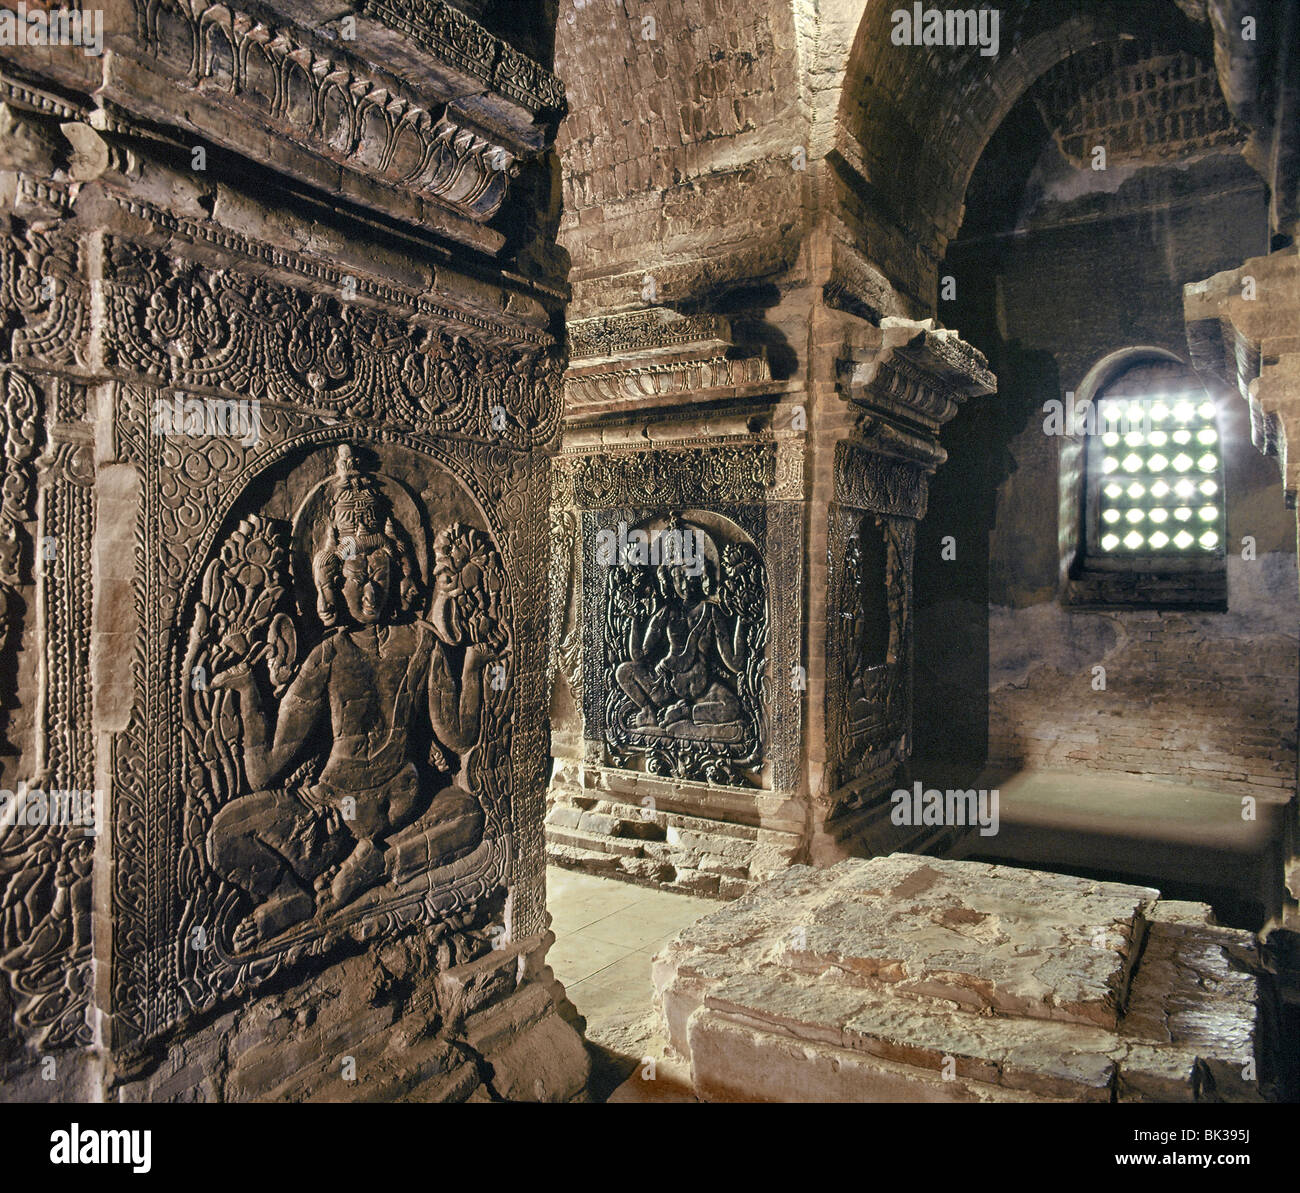 The inner sanctum of Nanpaya temple, with Brahmanic images sculpted on the pillars, Bagan (Pagan), Myanmar (Burma), - Stock Image